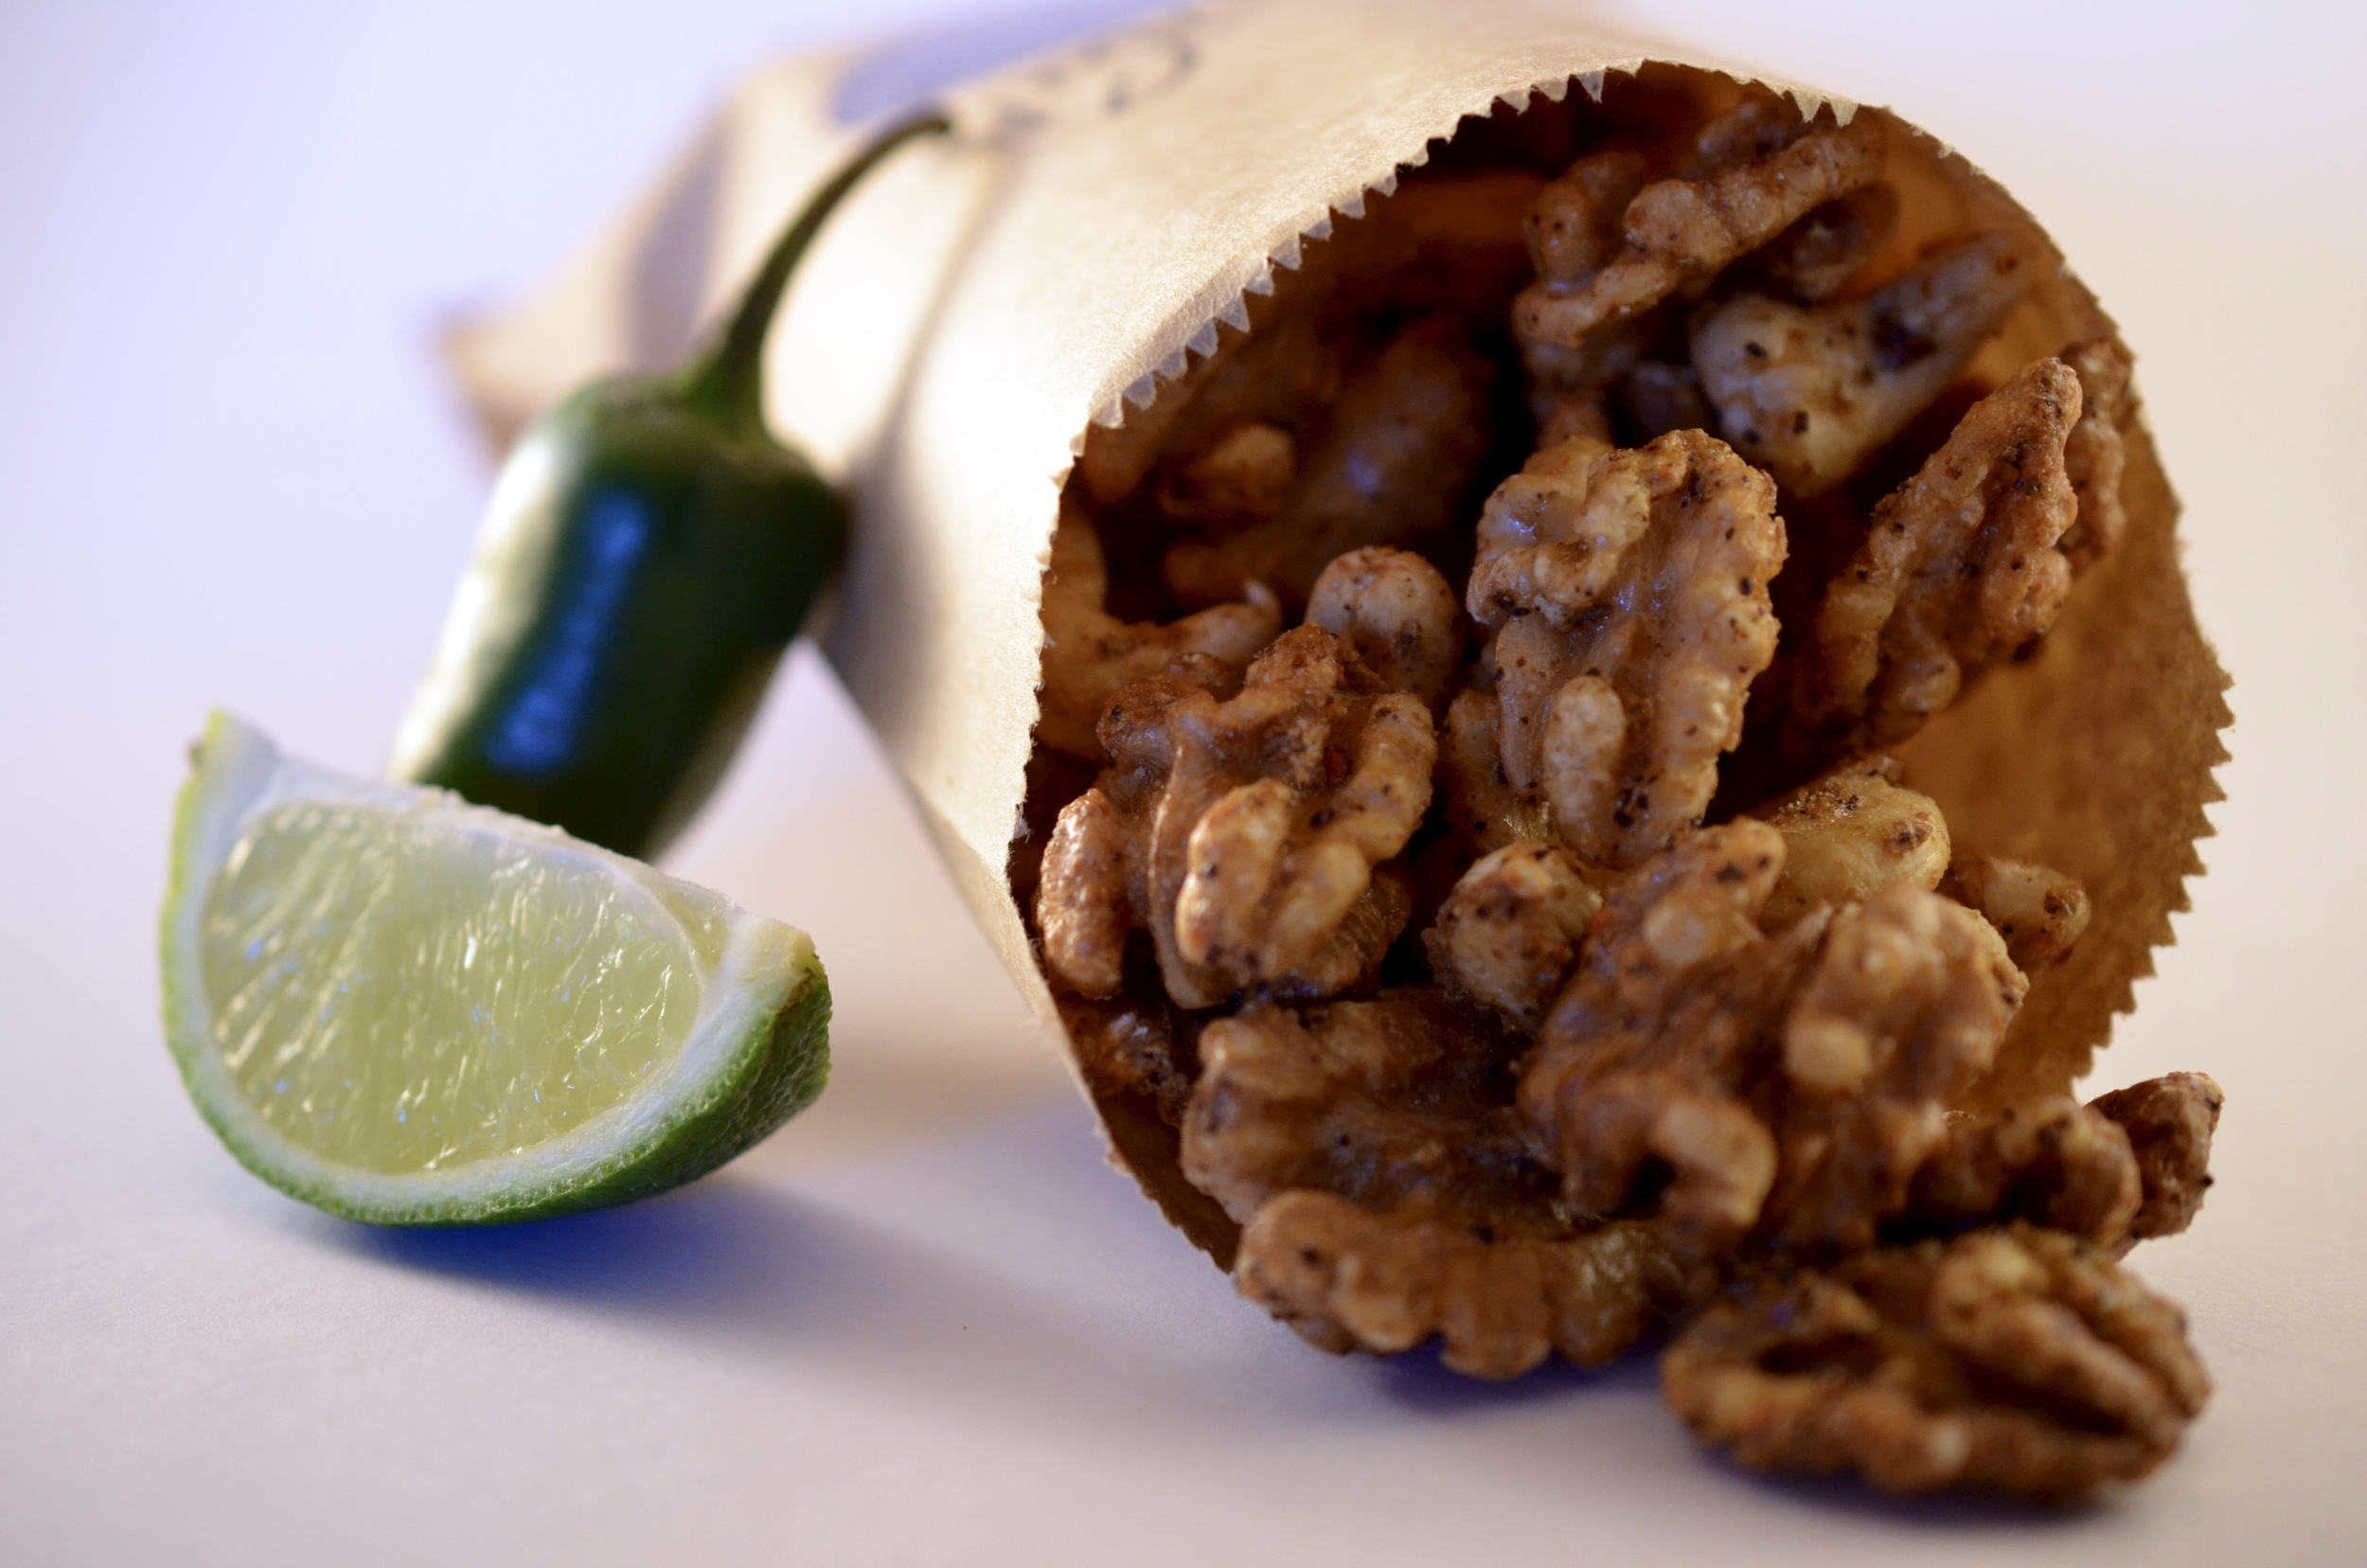 Hibiscus Dinners street food: homemade spicy nuts made for the Sofienberggate Festival 2016